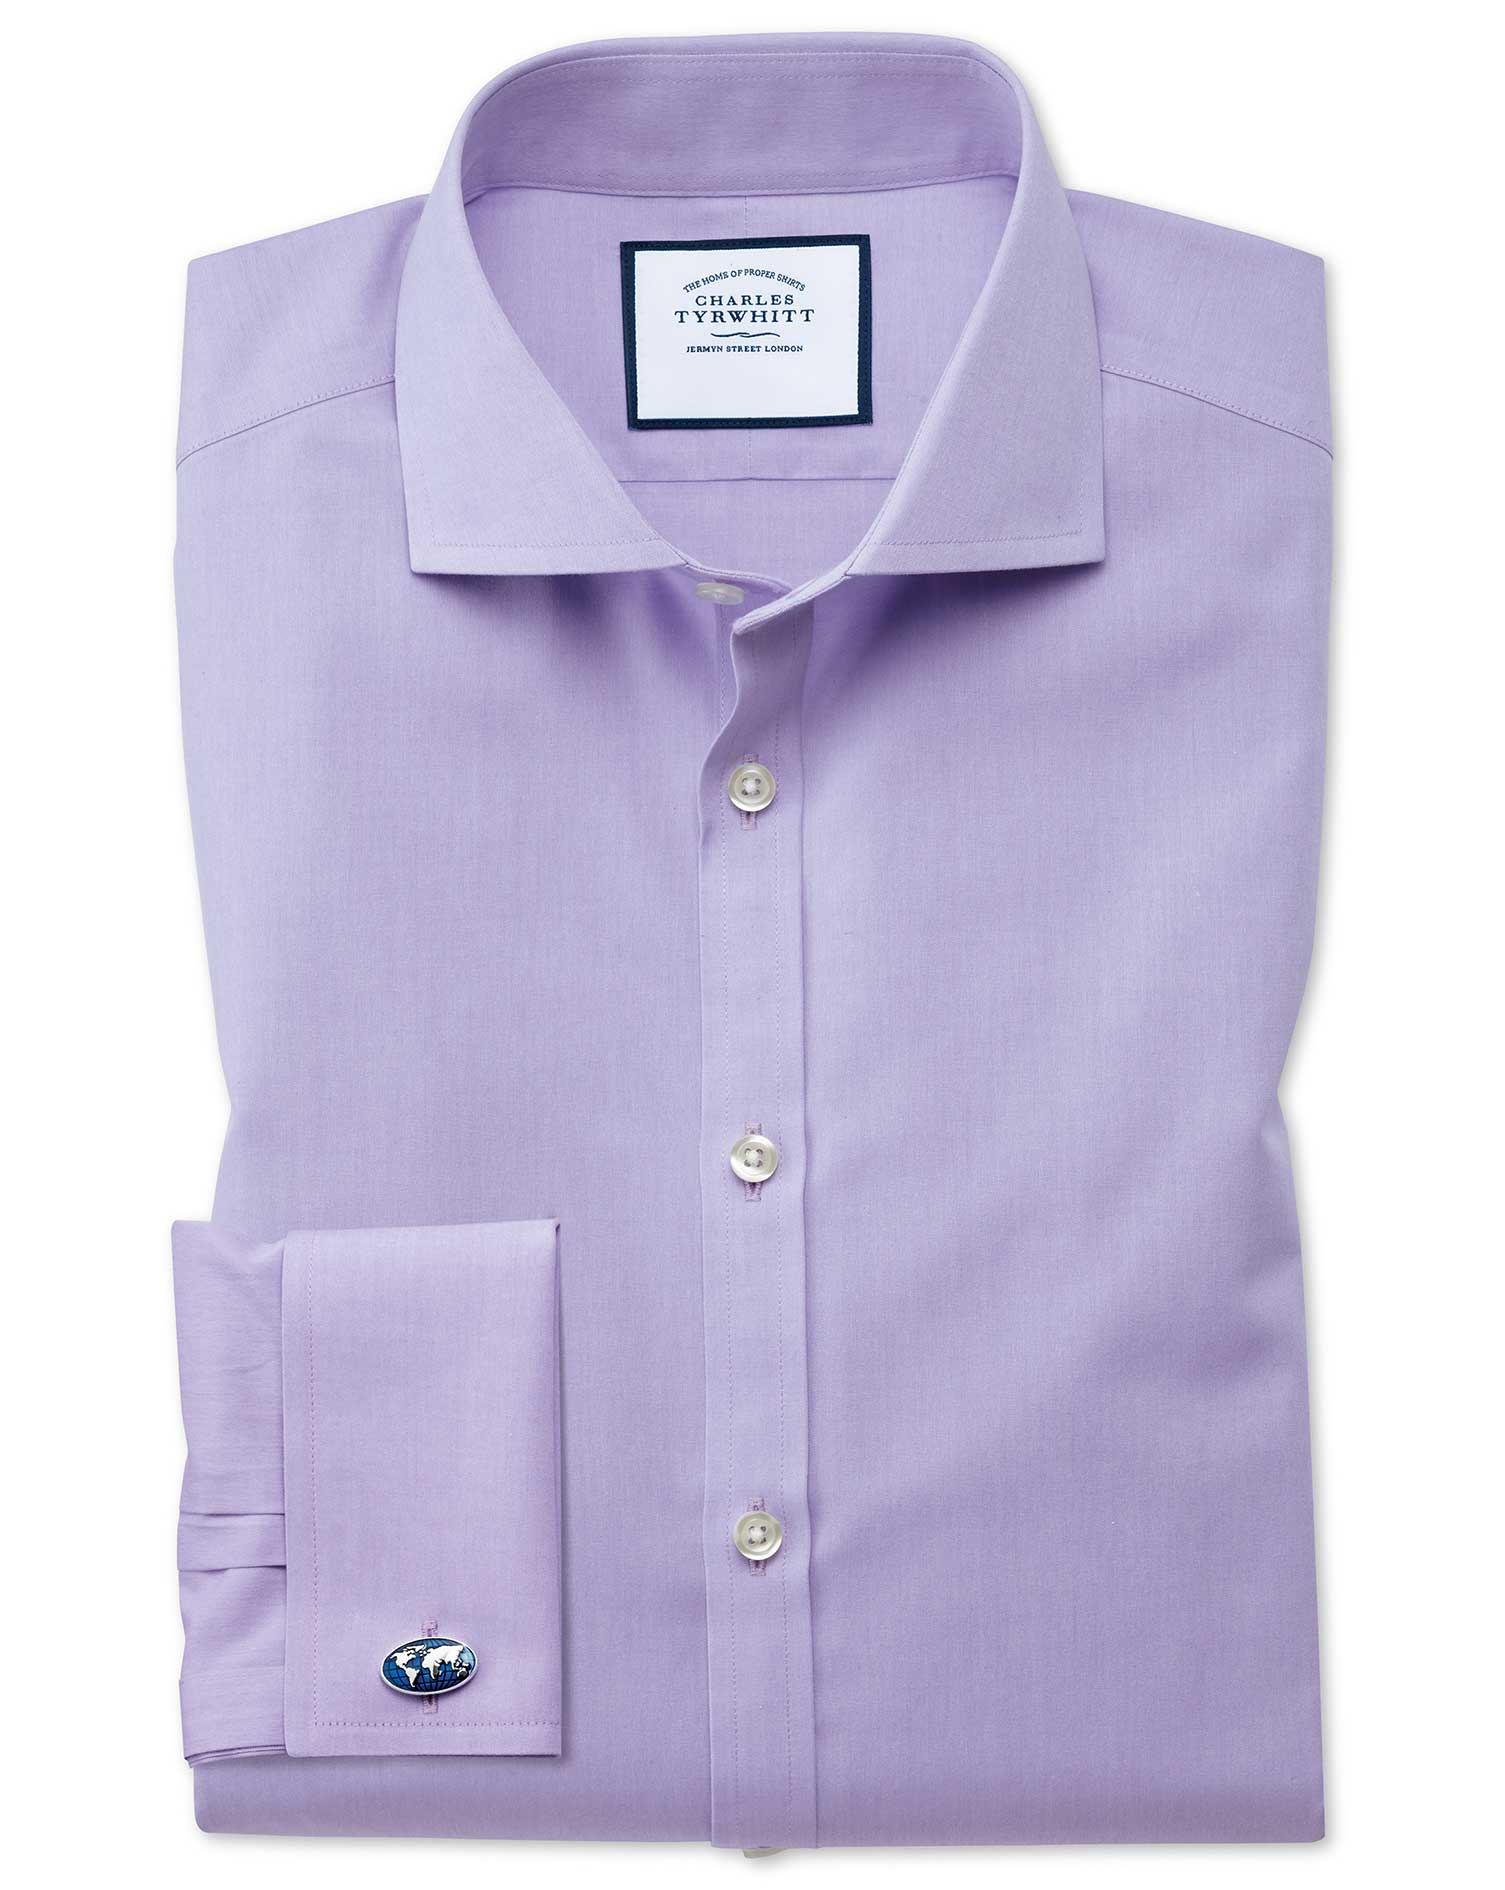 Extra Slim Fit Cutaway Non-Iron Poplin Lilac Cotton Formal Shirt Double Cuff Size 16/34 by Charles T